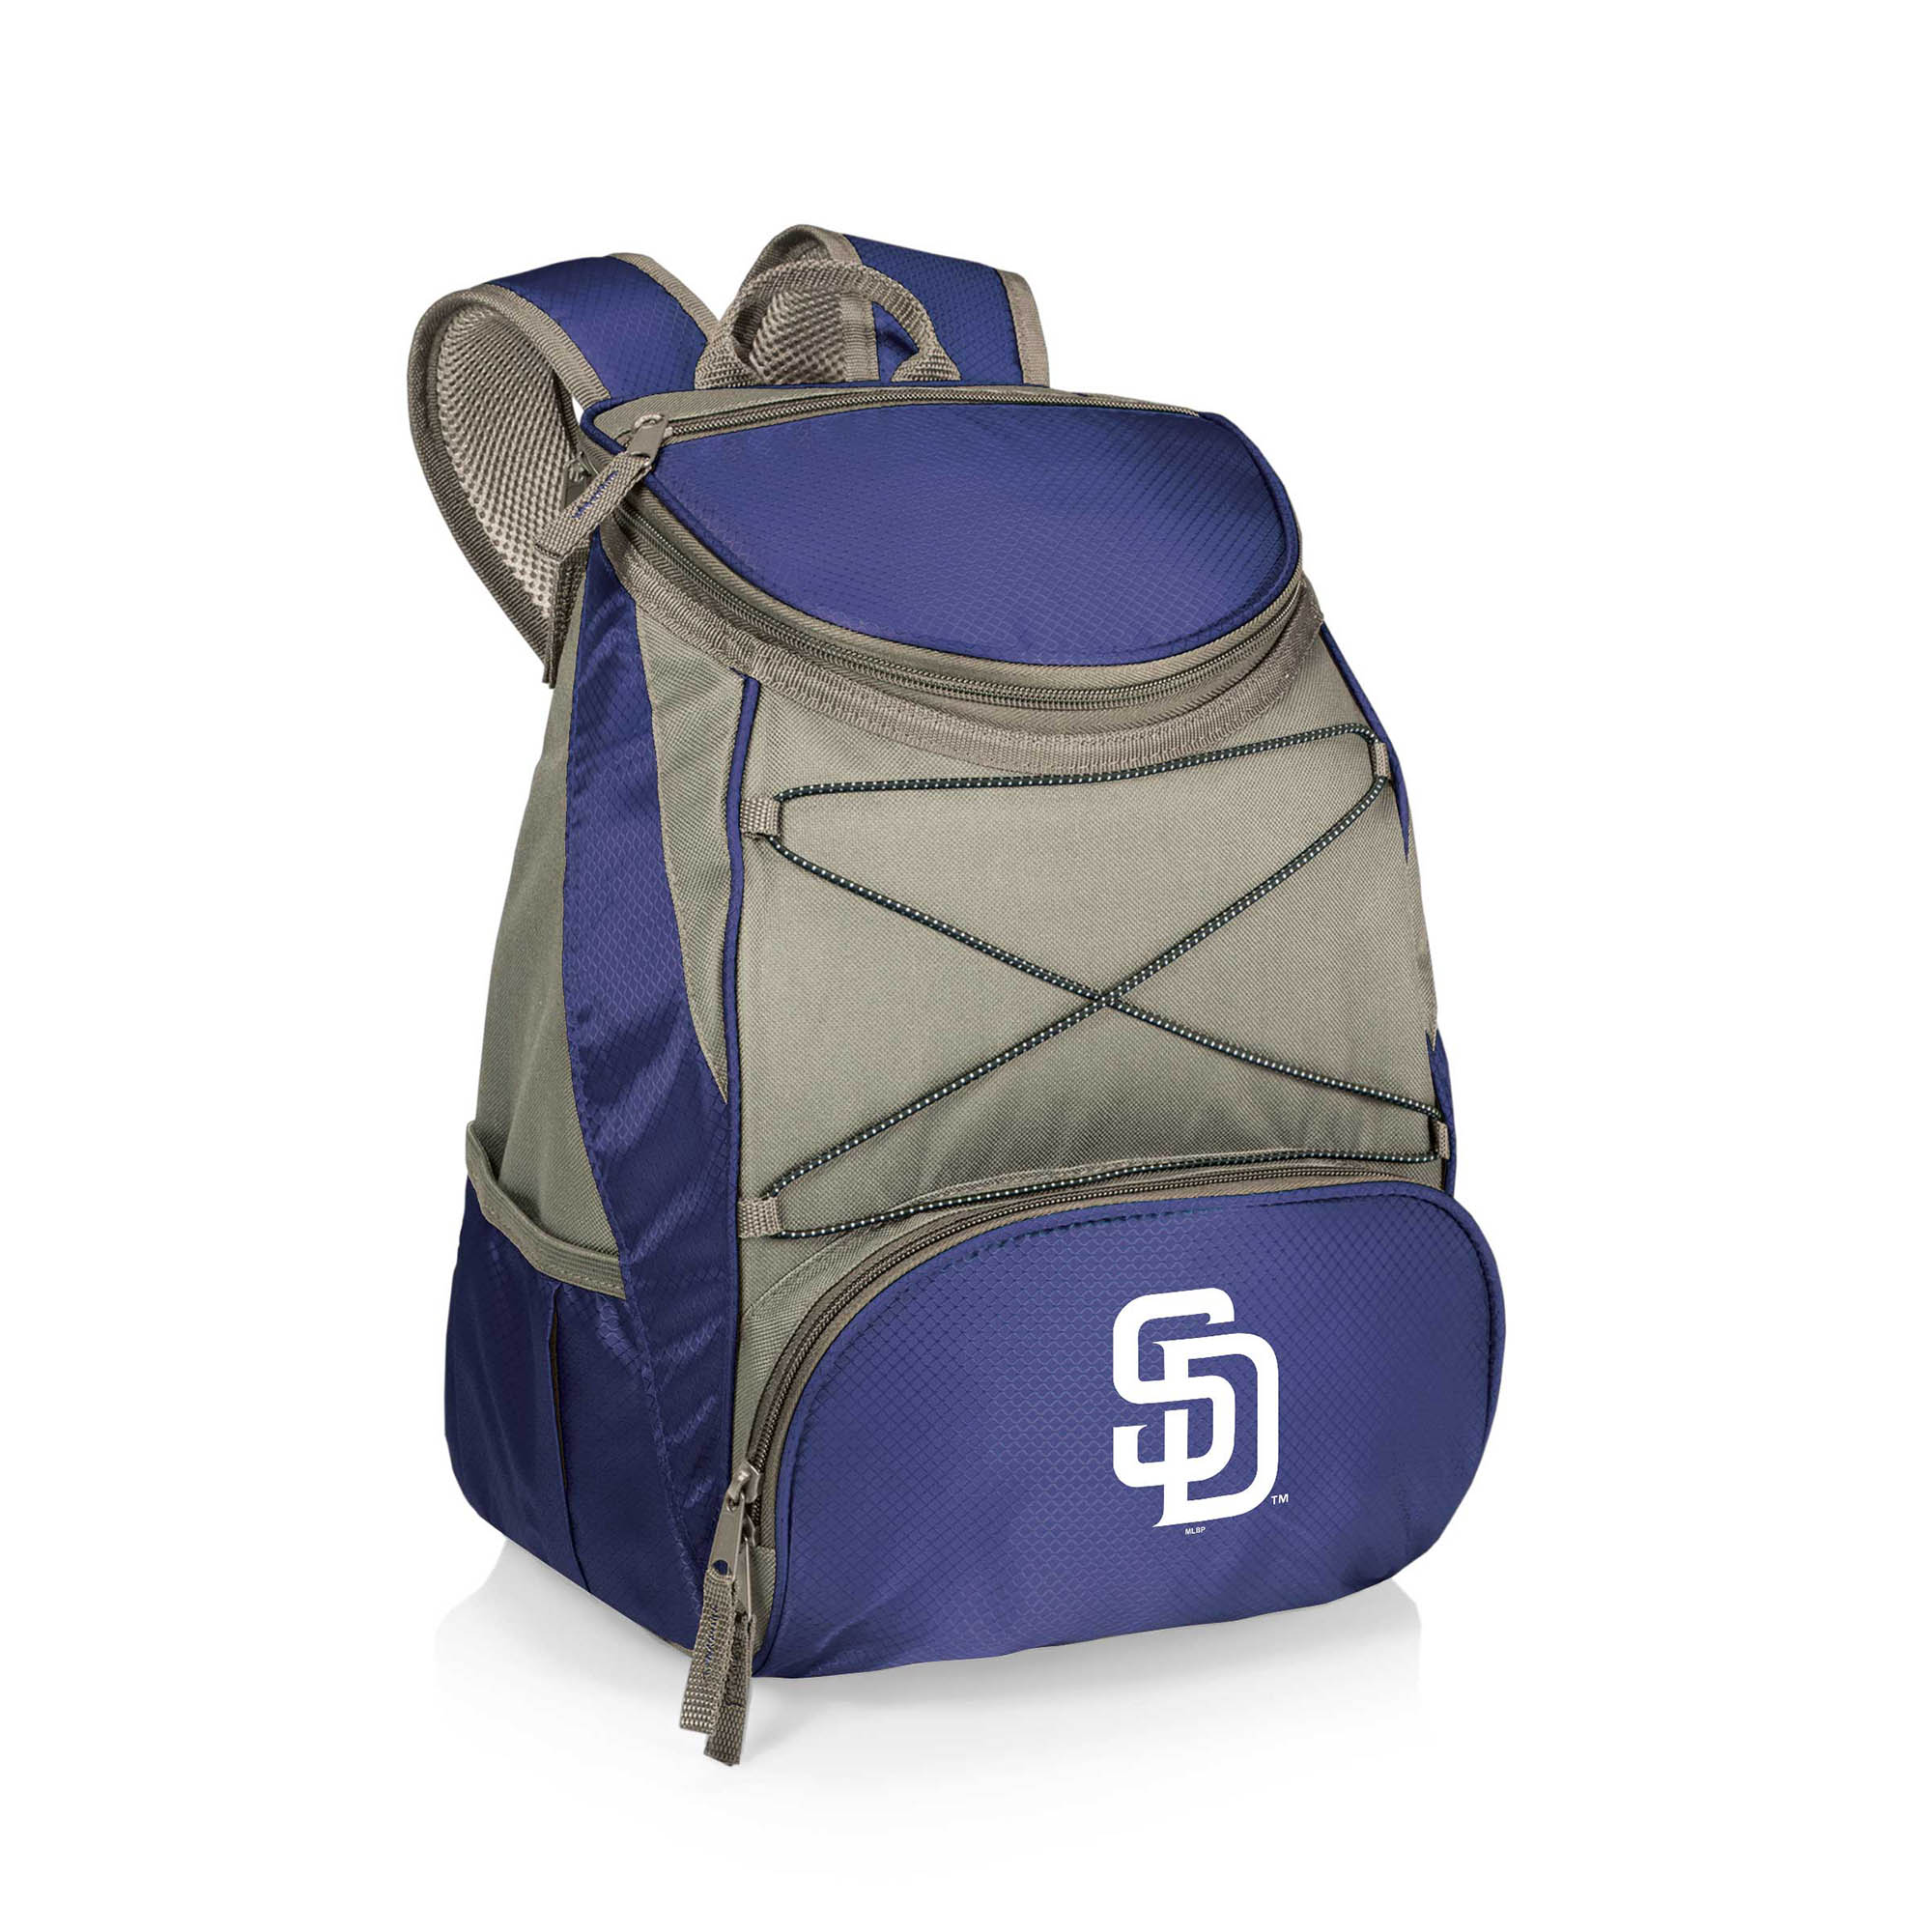 San Diego Padres PTX Backpack Cooler - Navy - No Size